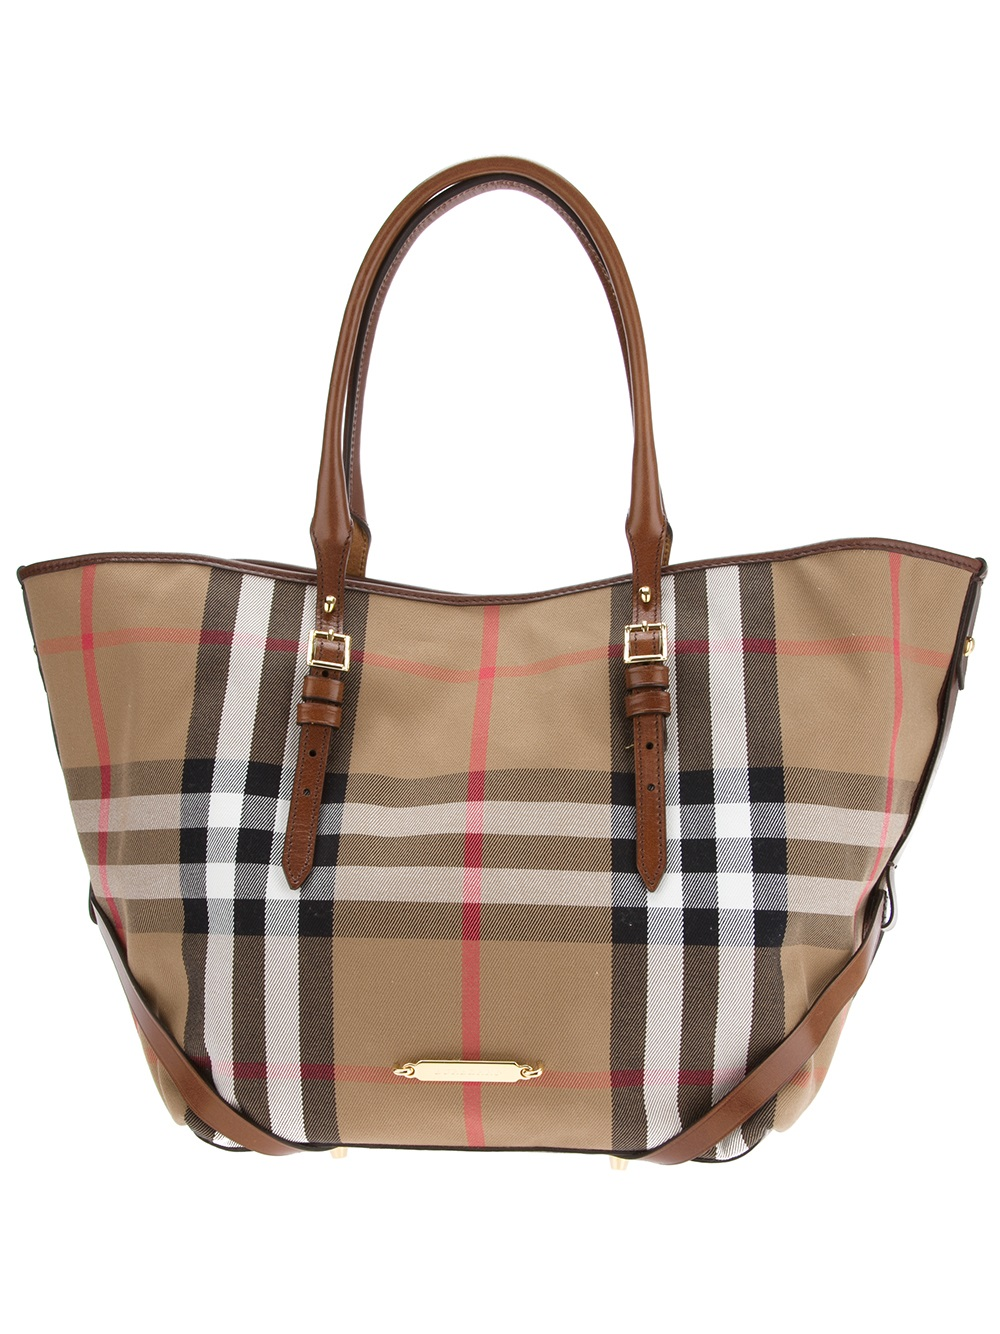 748ece6f9d07 Lyst - Burberry Medium Bridle House Tote Bag in Brown